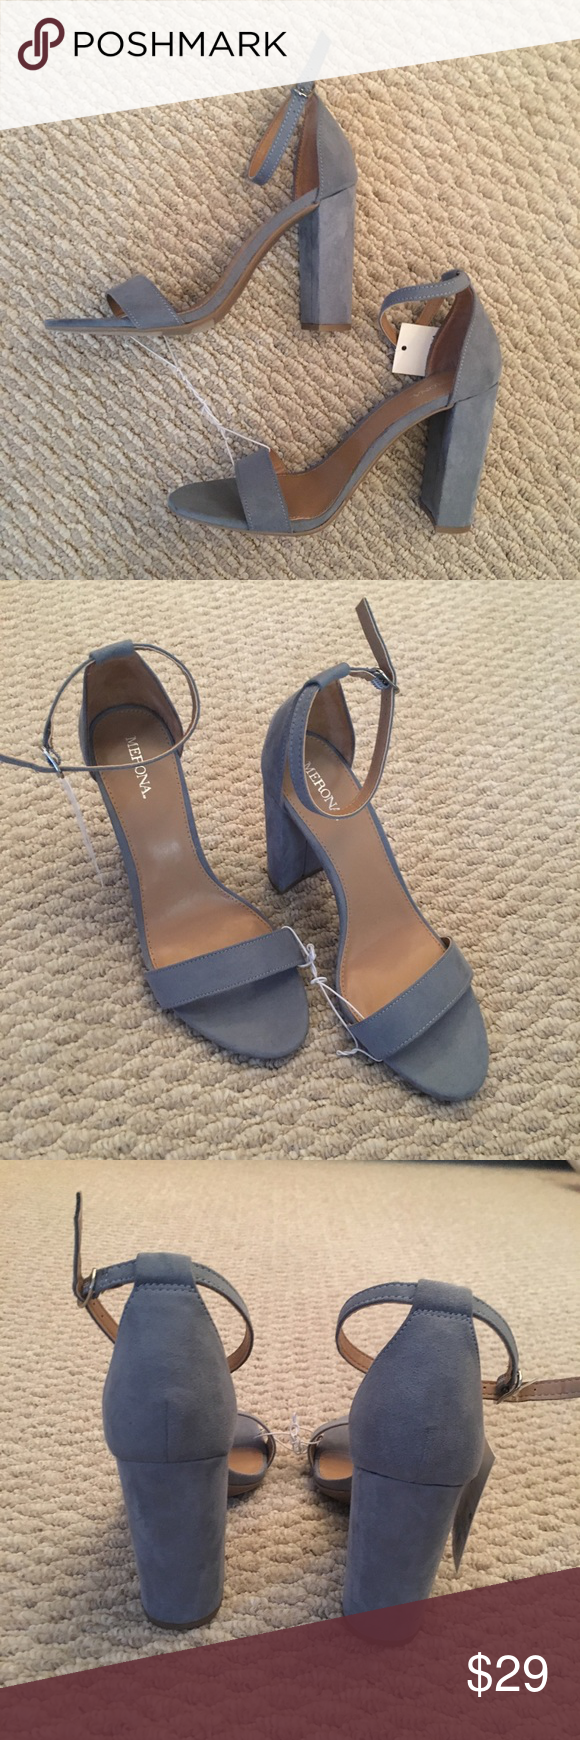 e660e6b21f0 Merona lulu s women block heel sandal NWT Powder Blue Sandals. Elegant and  understated